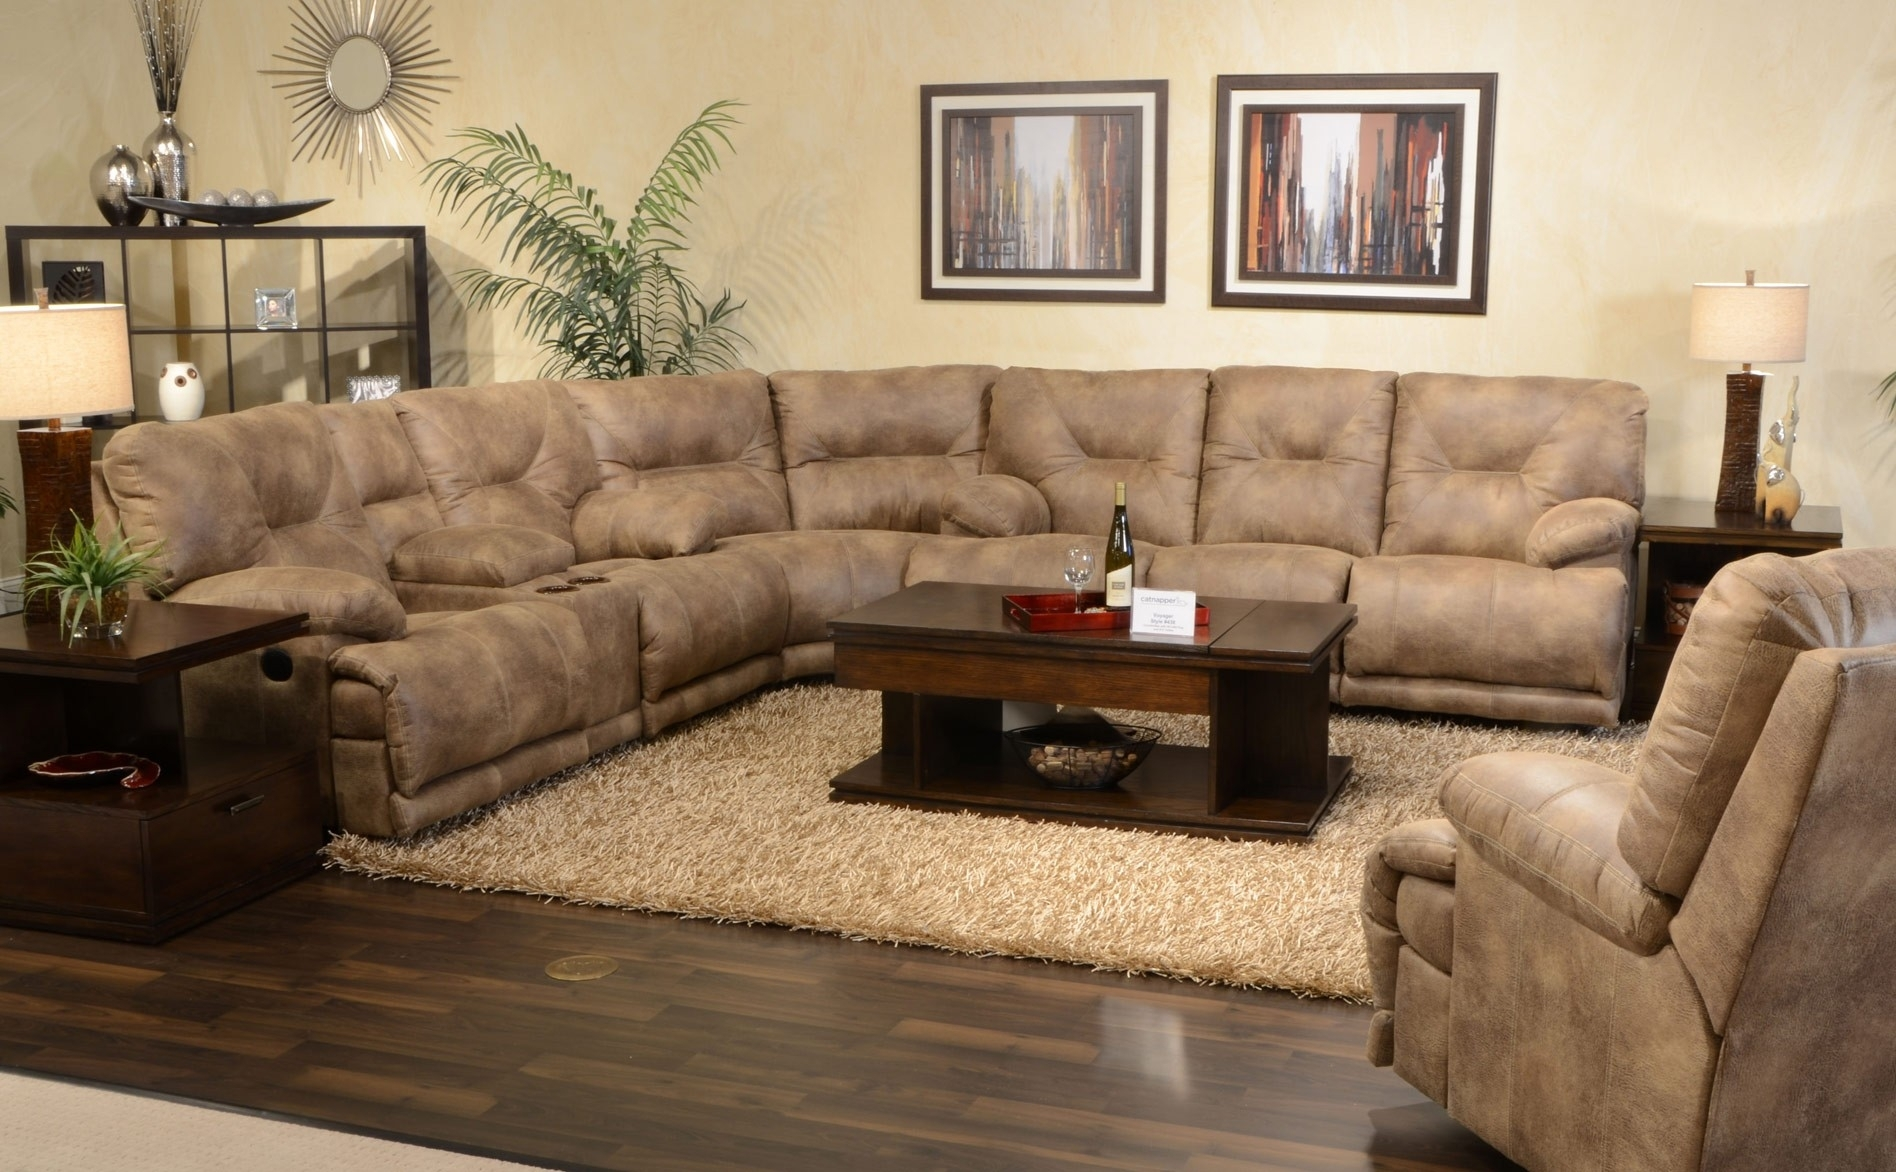 Furniture : Barcelona Sectional Sofa & Ottoman In Beige Sofa 3 Intended For Sectional Sofas For Small Doorways (View 5 of 10)